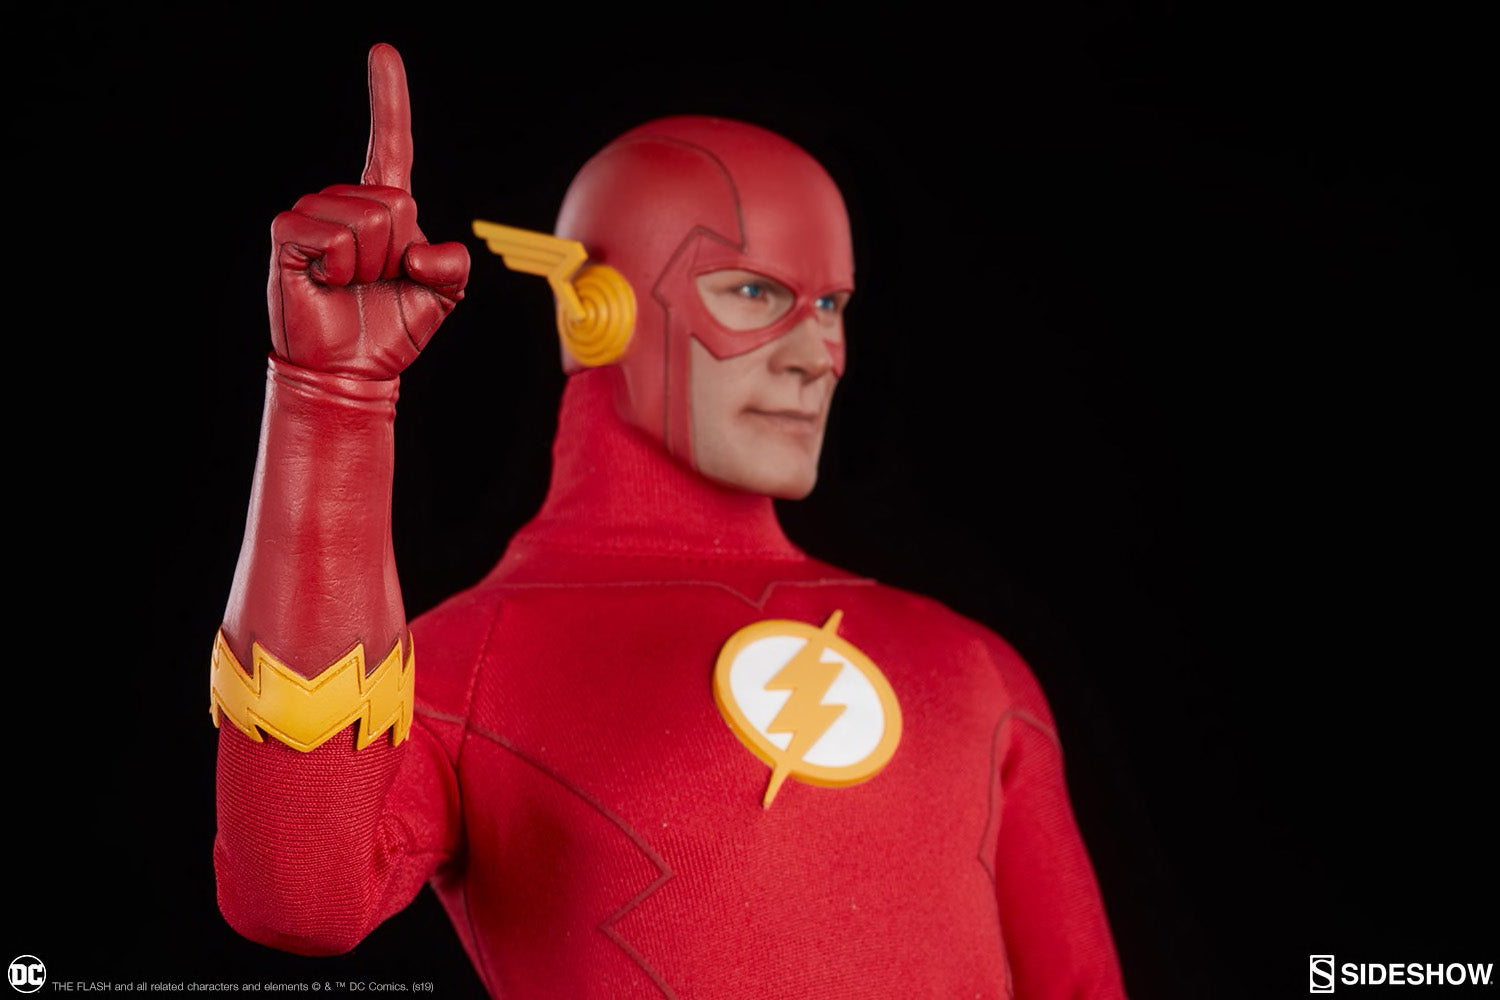 Sideshow Collectibles - Sixth Scale Figure - DC Comics - The Flash